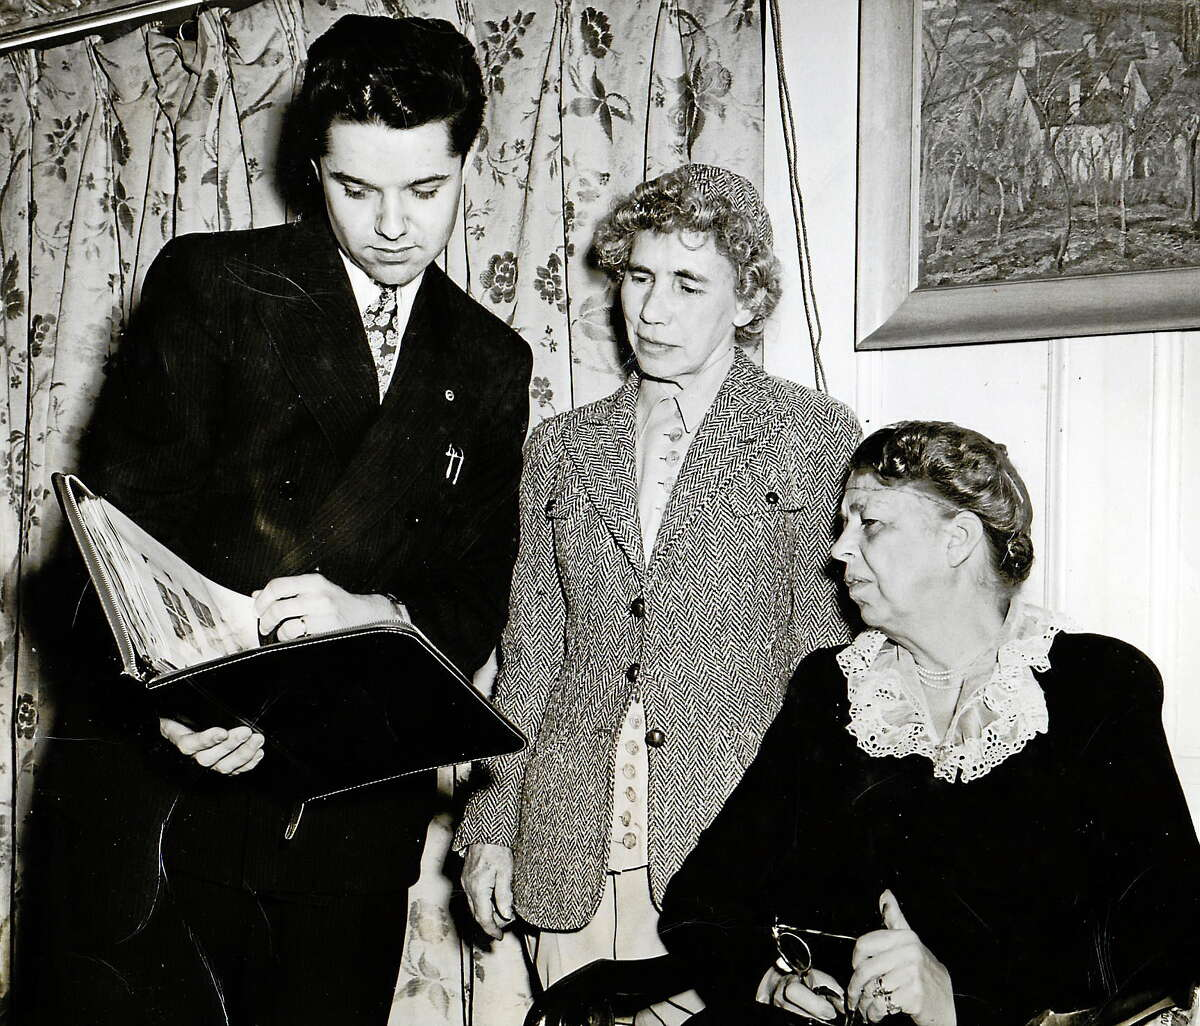 Henry Josten, former reporter for the Middletown Press, with Esther Lape and Eleanor Roosevelt